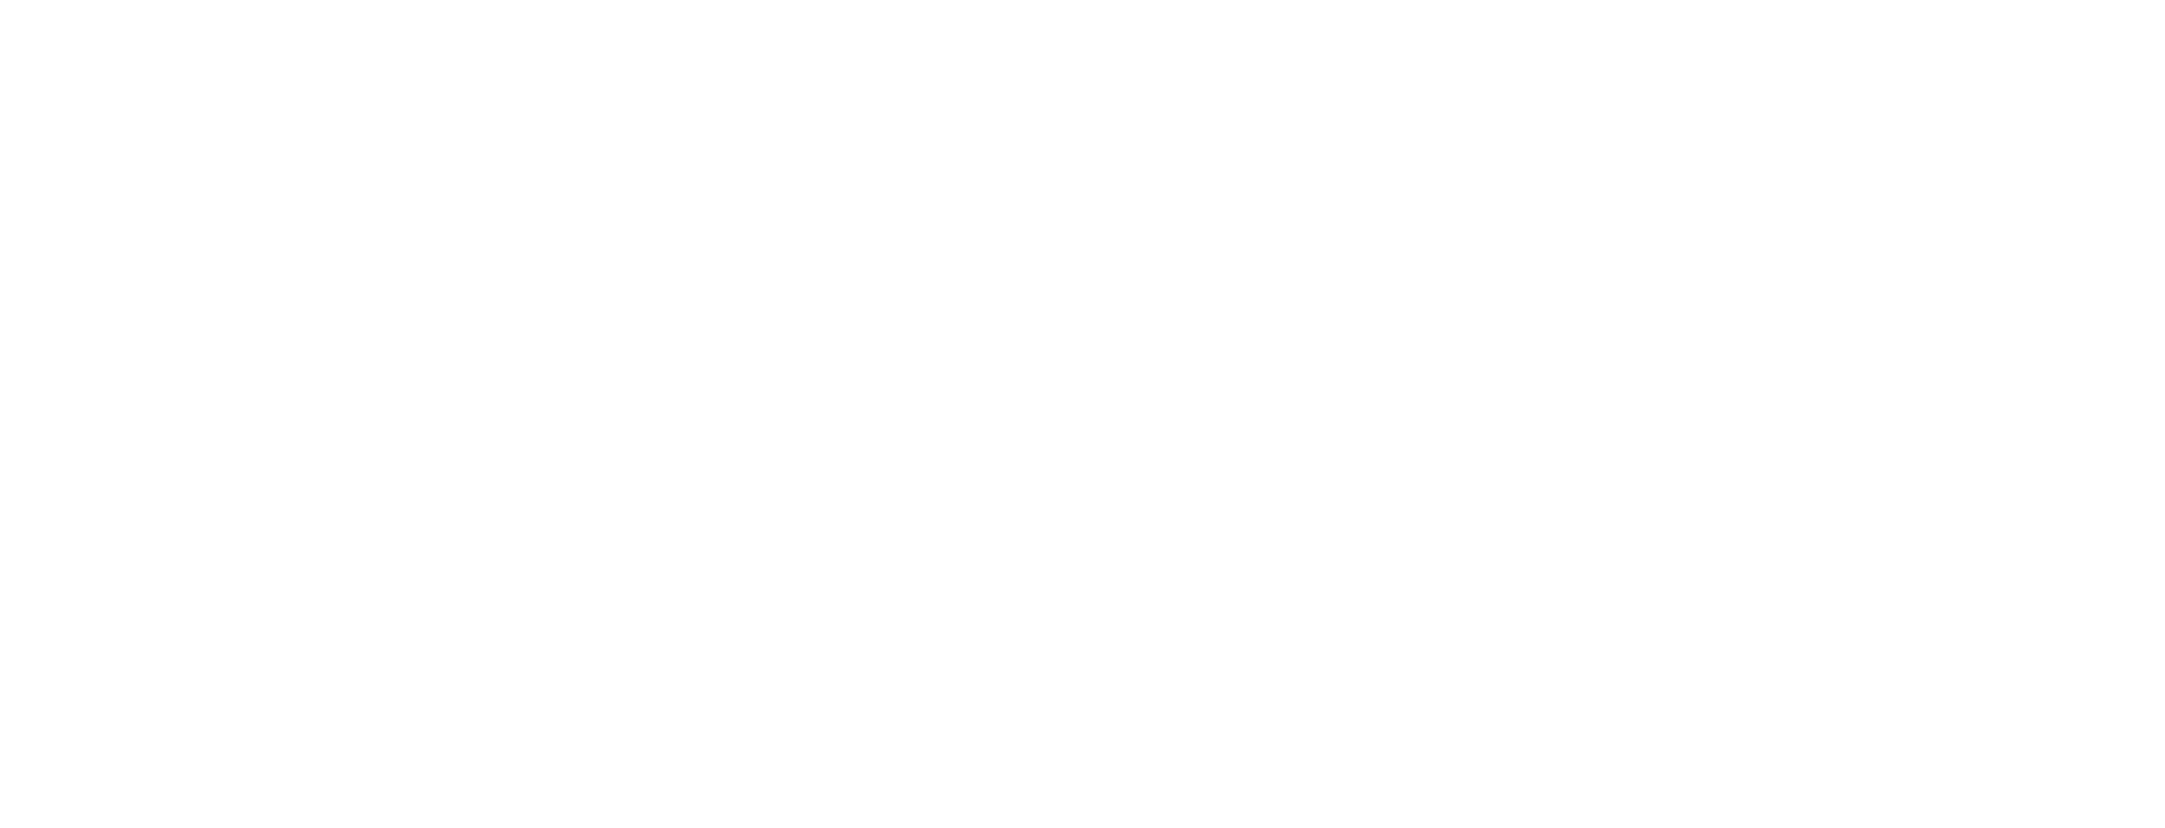 A list of designer eyewear brand logos included in the sale